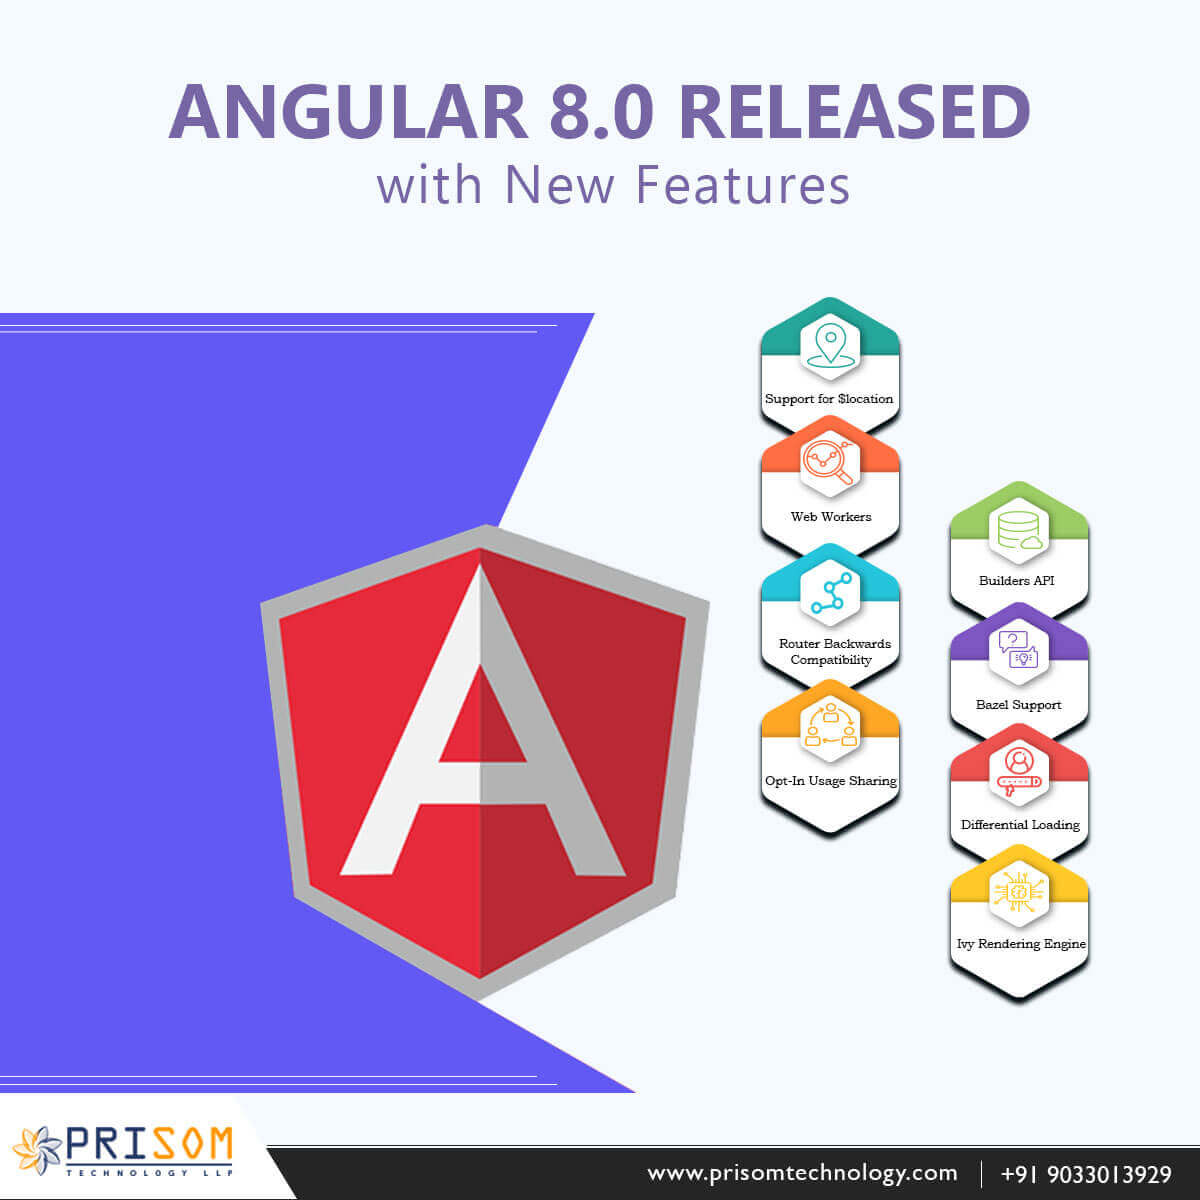 ANGULAR 8.0 RELEASED WITH NEW FEATURES